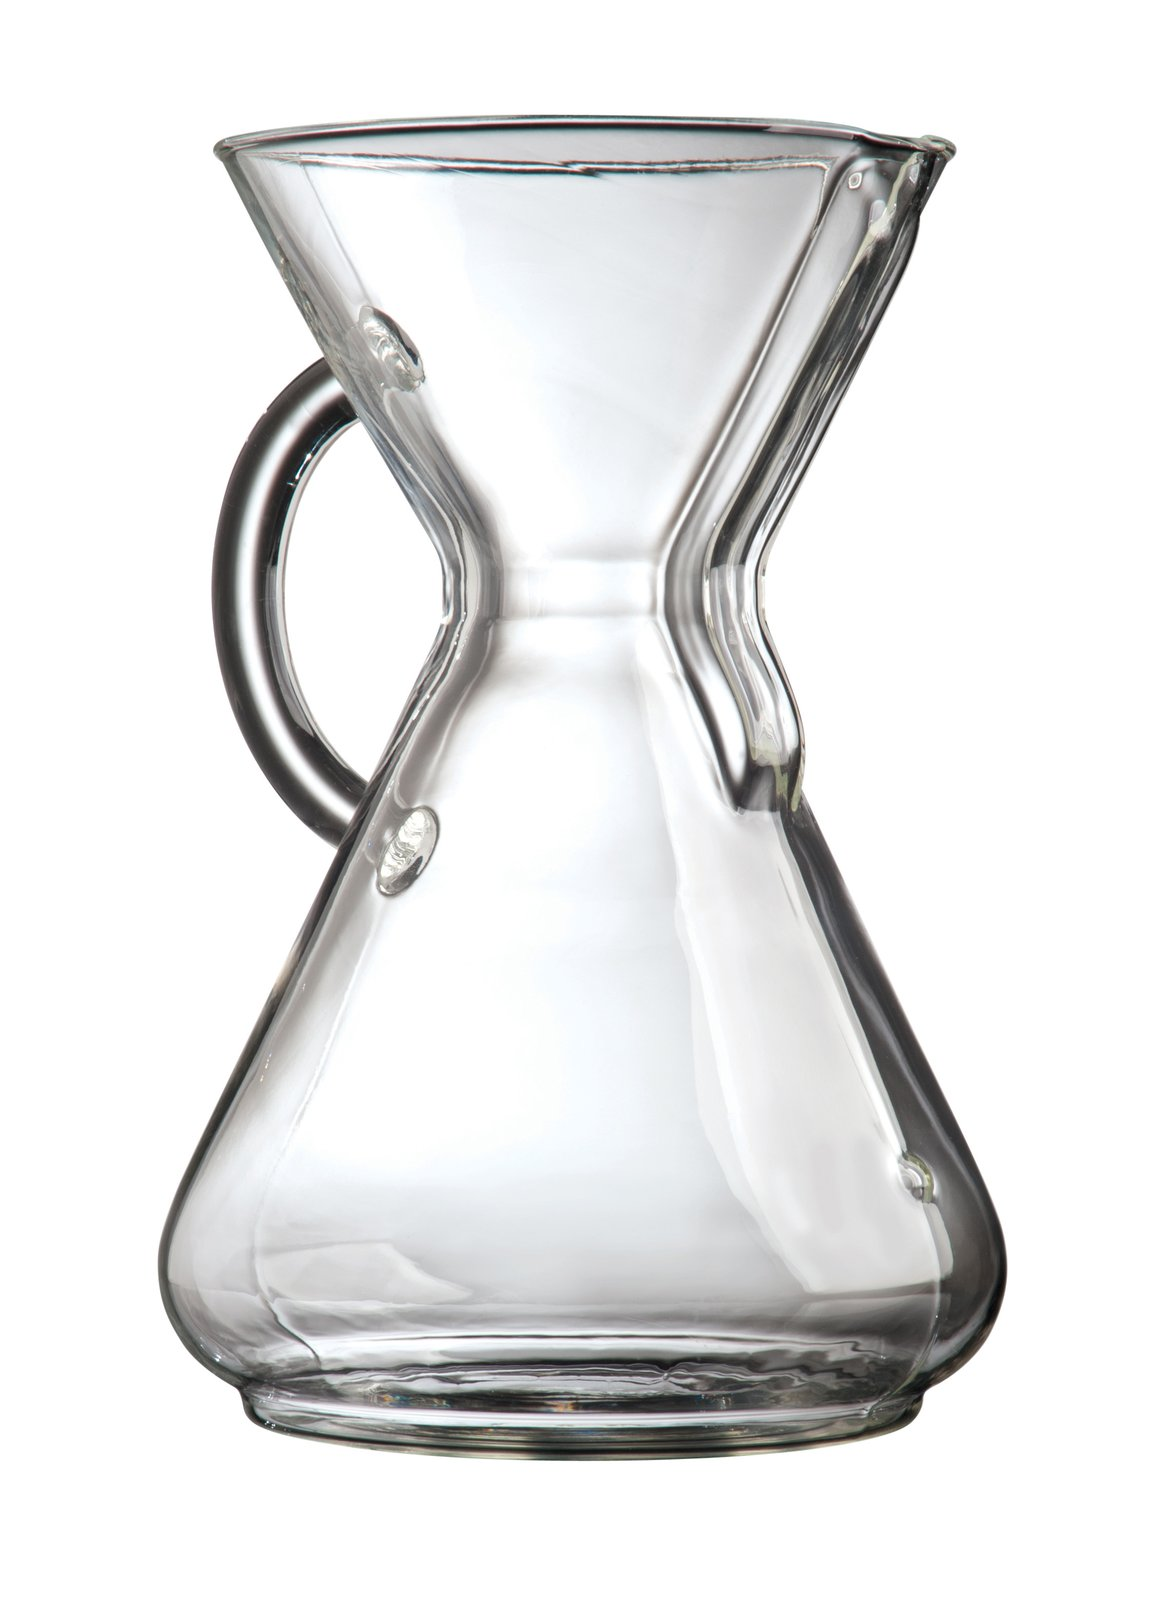 Ten-cup Glass Handle (1941) Chemex Inspired by the Bauhaus and  generic lab equipment, the Chemex coffee maker is made from  a single piece of borosilicate glass. Essentially unchanged since its invention, the piece, produced today  in Massachusetts, is part of the permanent collection at MoMA.